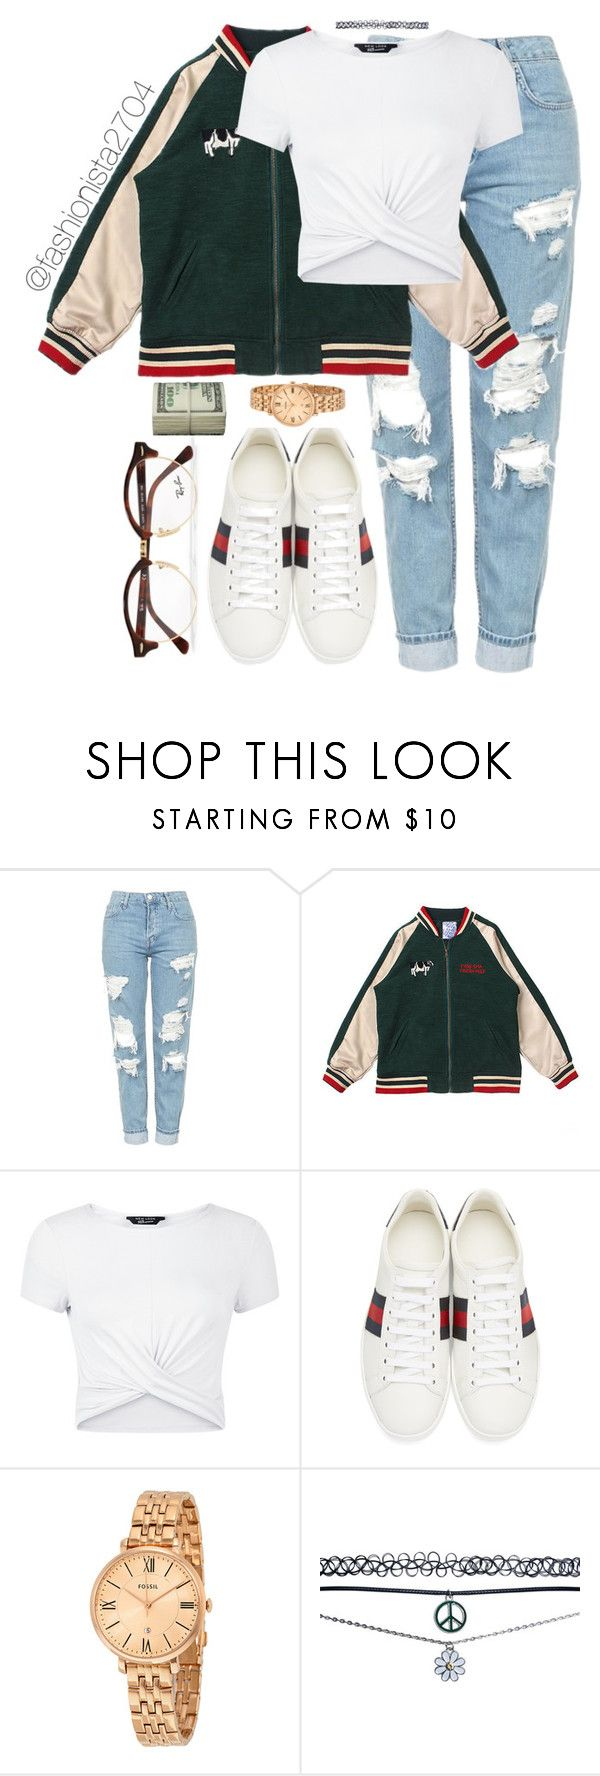 """Untitled #899"" by fashionista2704 ❤ liked on Polyvore featuring Topshop, New Look, Gucci, Wet Seal and Ray-Ban"